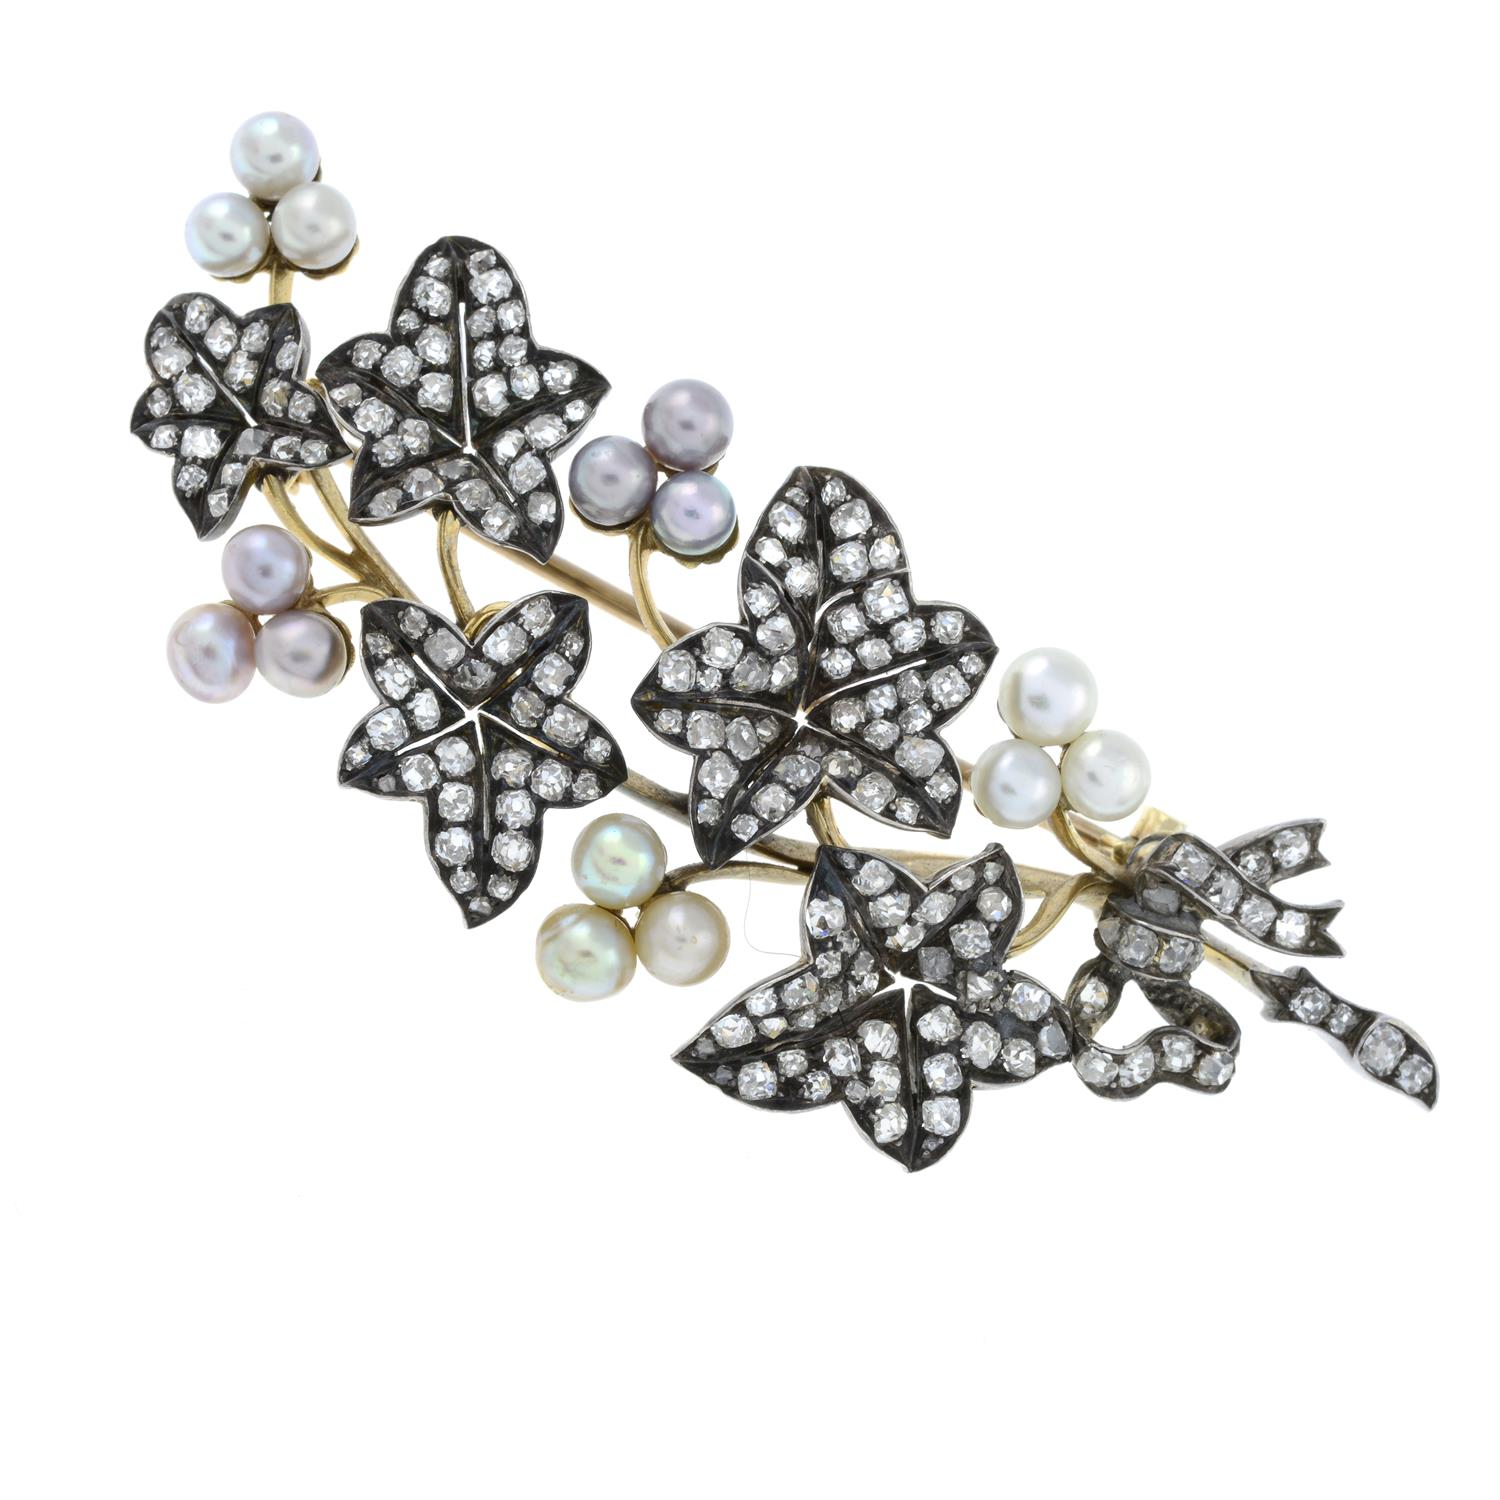 A late Victorian silver and gold, old-cut diamond and vari-hue pearl ivy sprig brooch. - Image 2 of 5